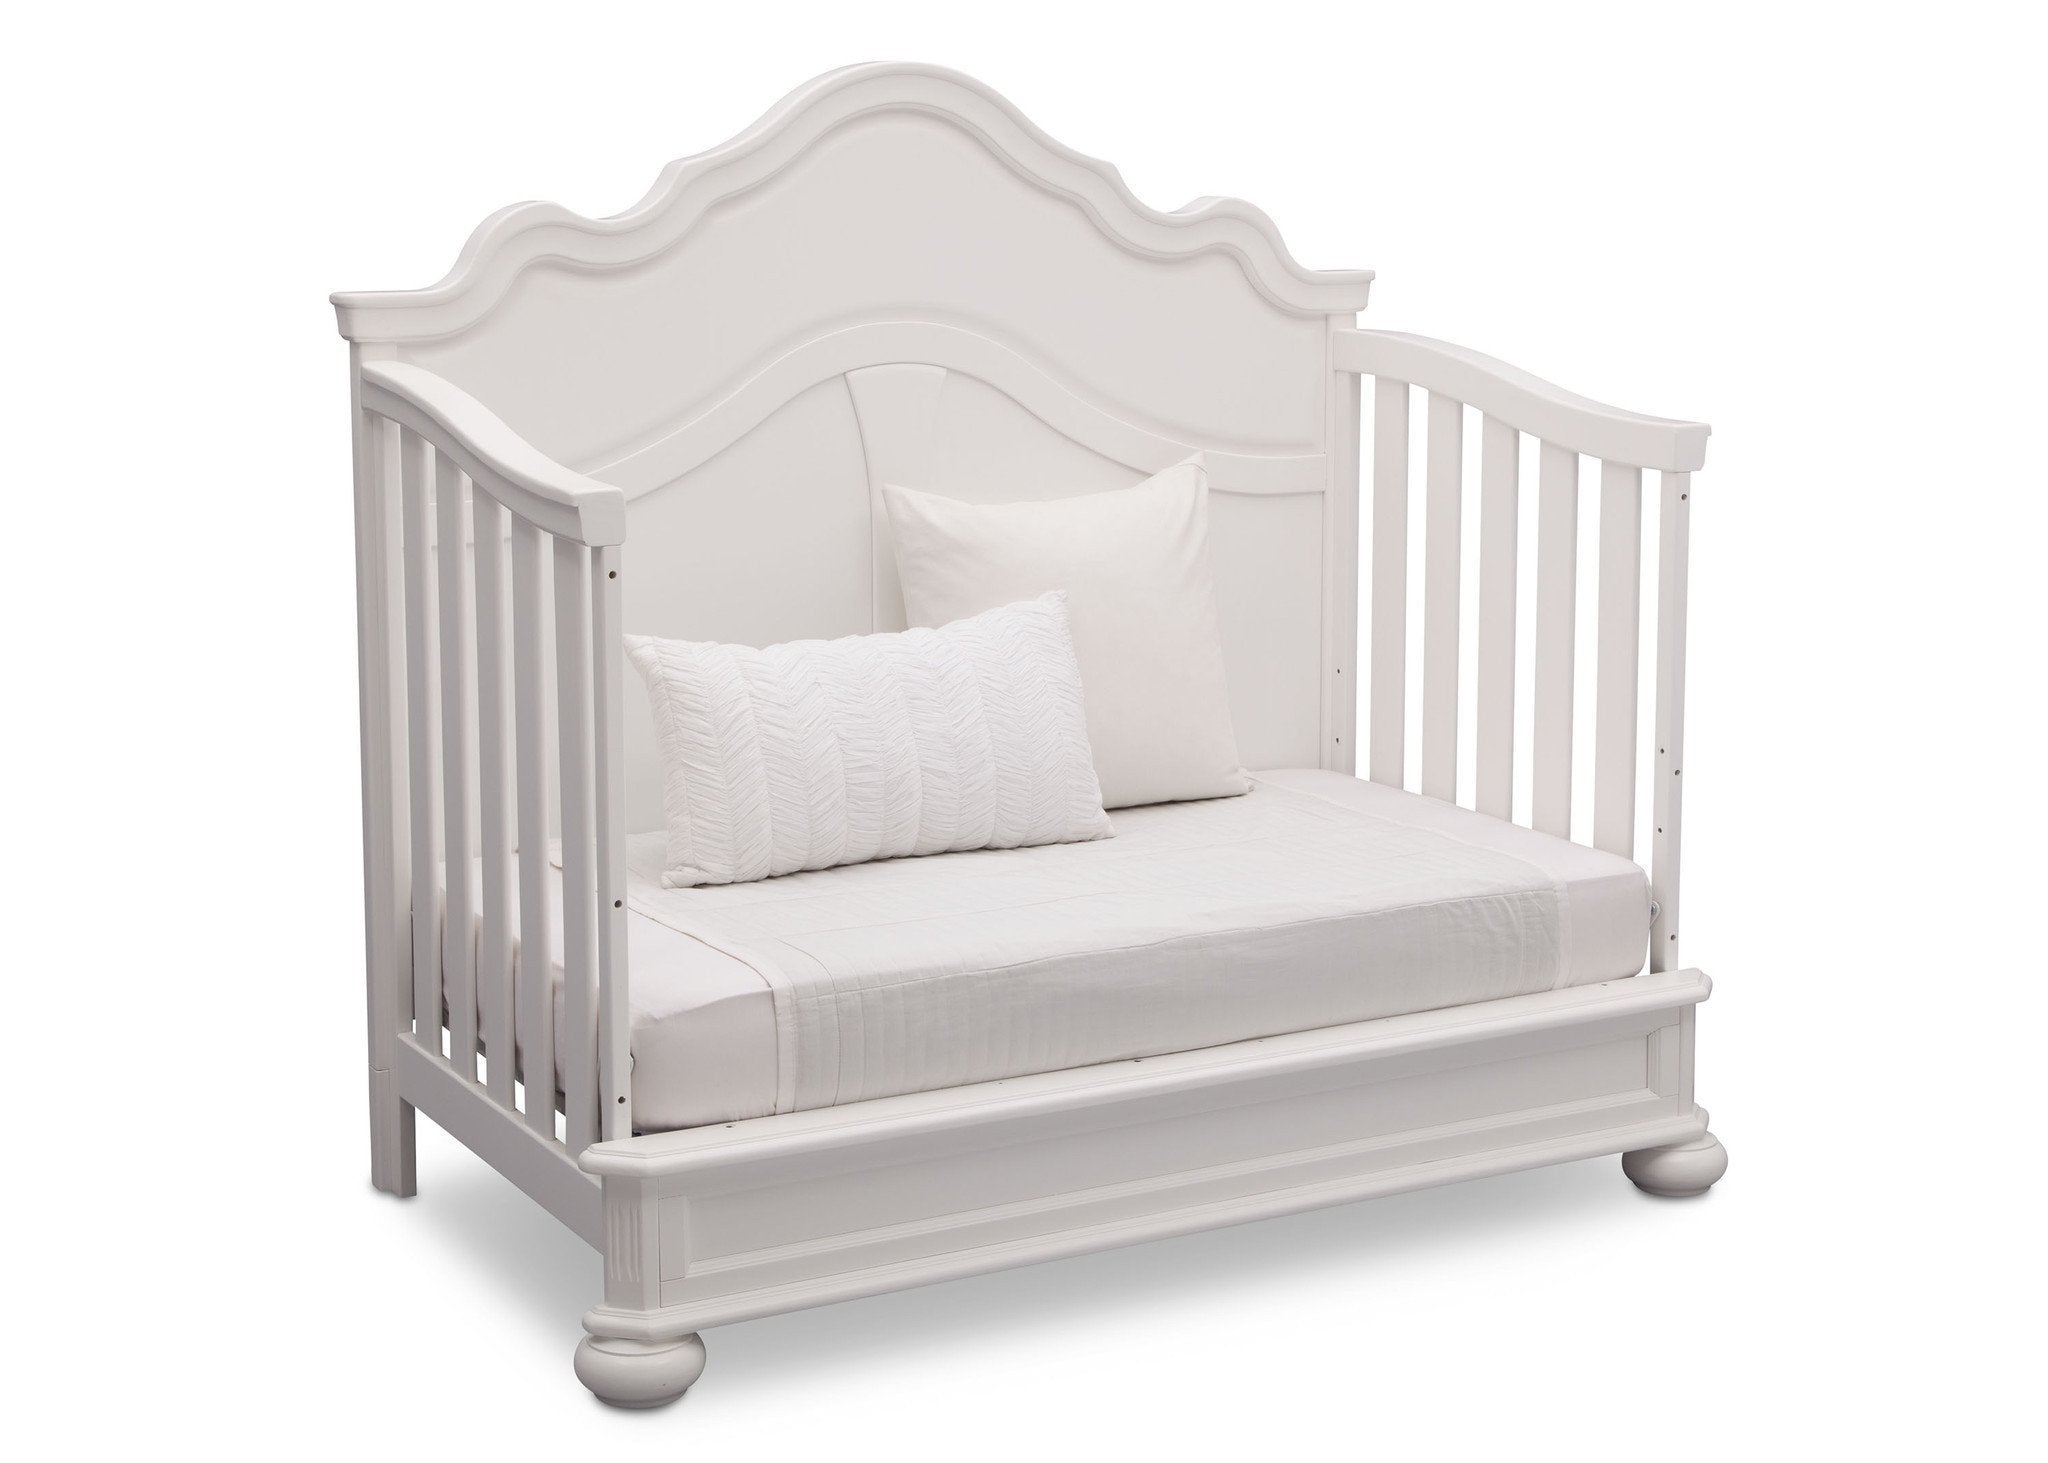 Simmons Kids Bianca (130) Peyton Crib n' more Daybed conversion view a5a